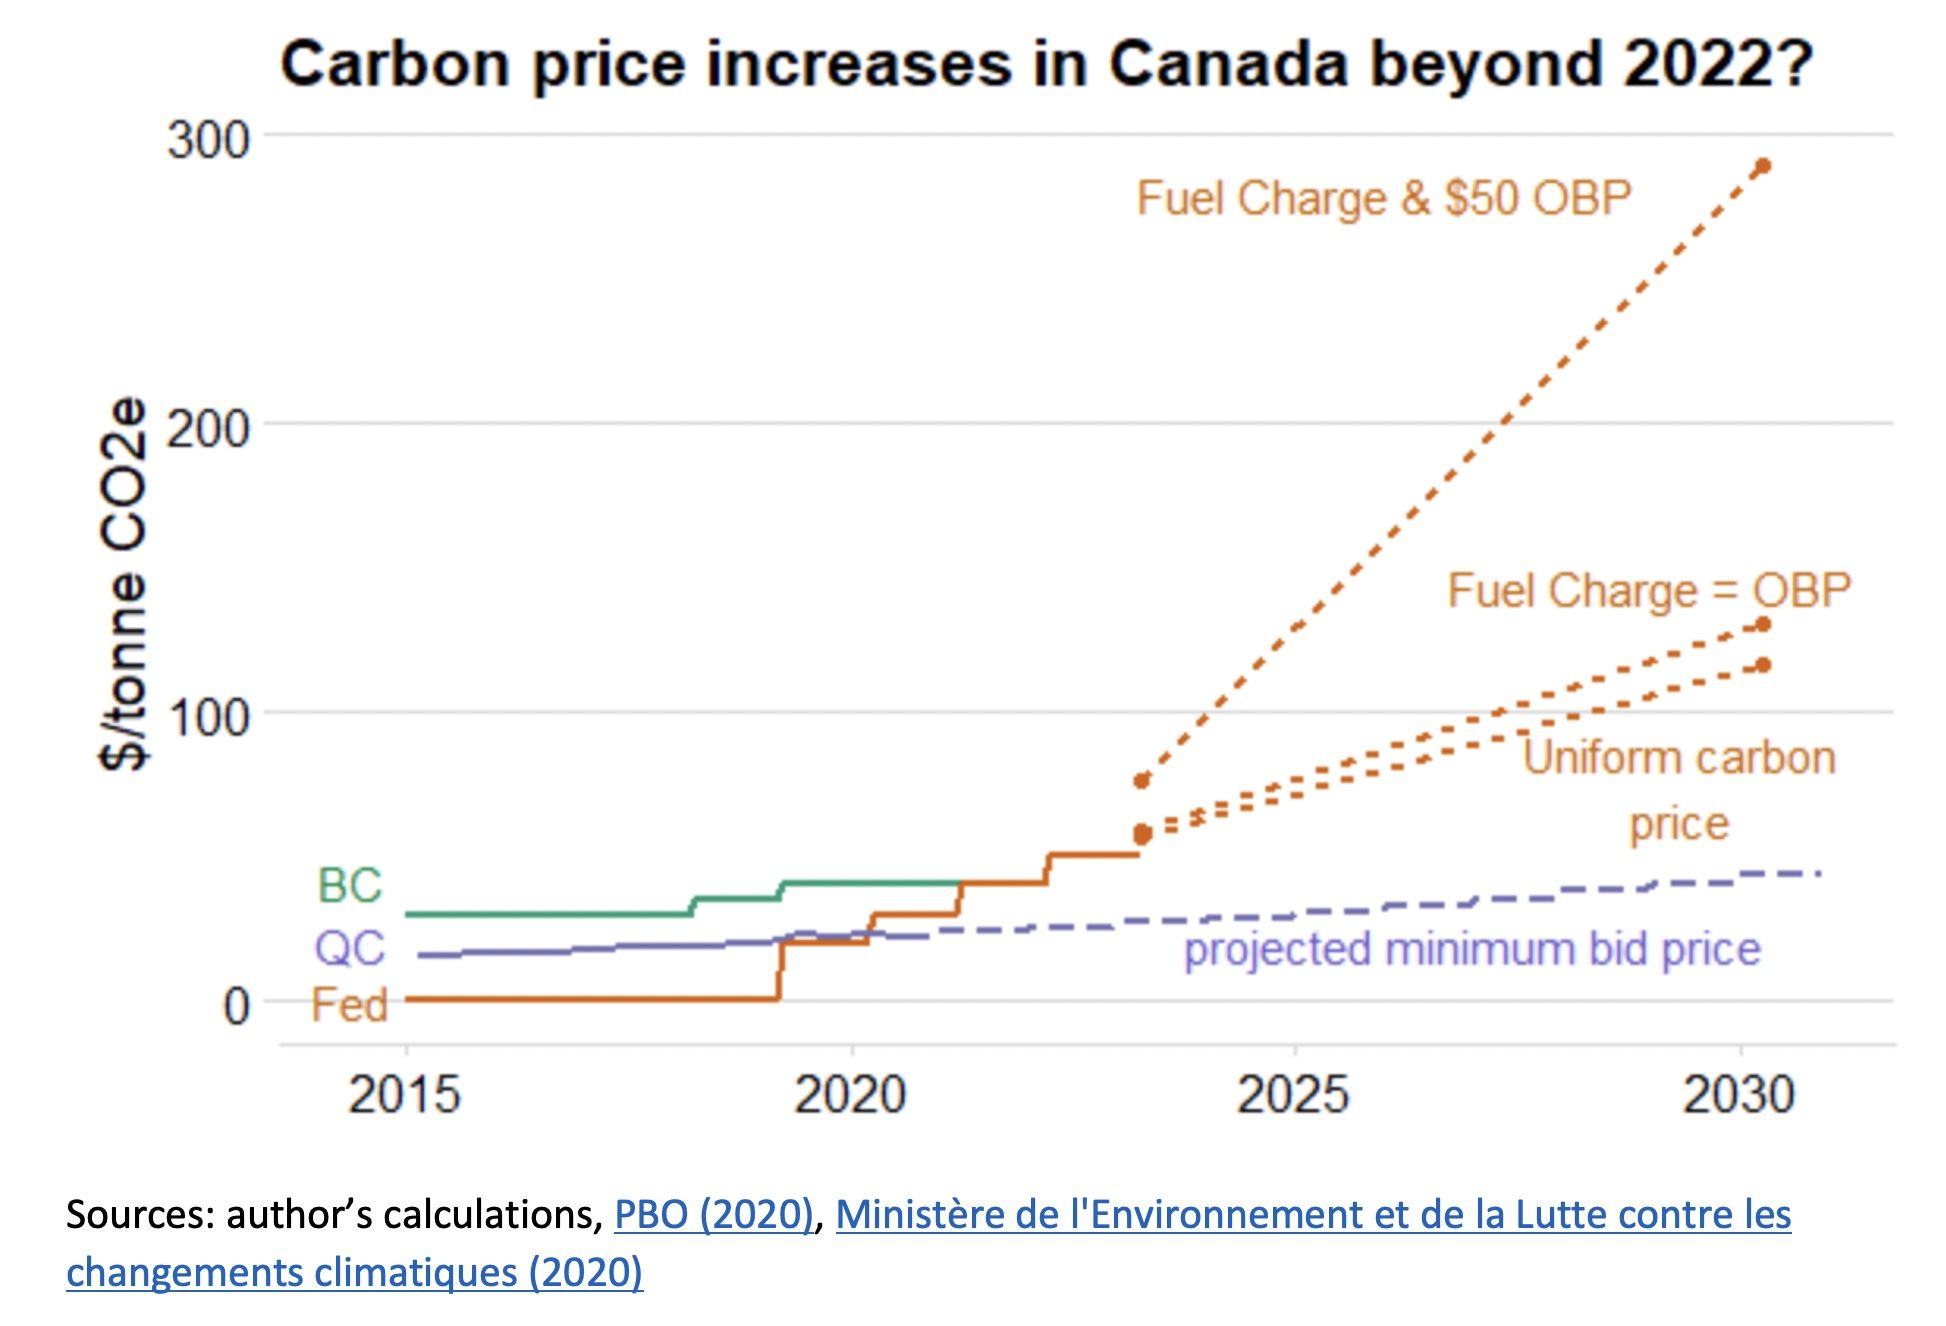 Chart showing carbon price projections